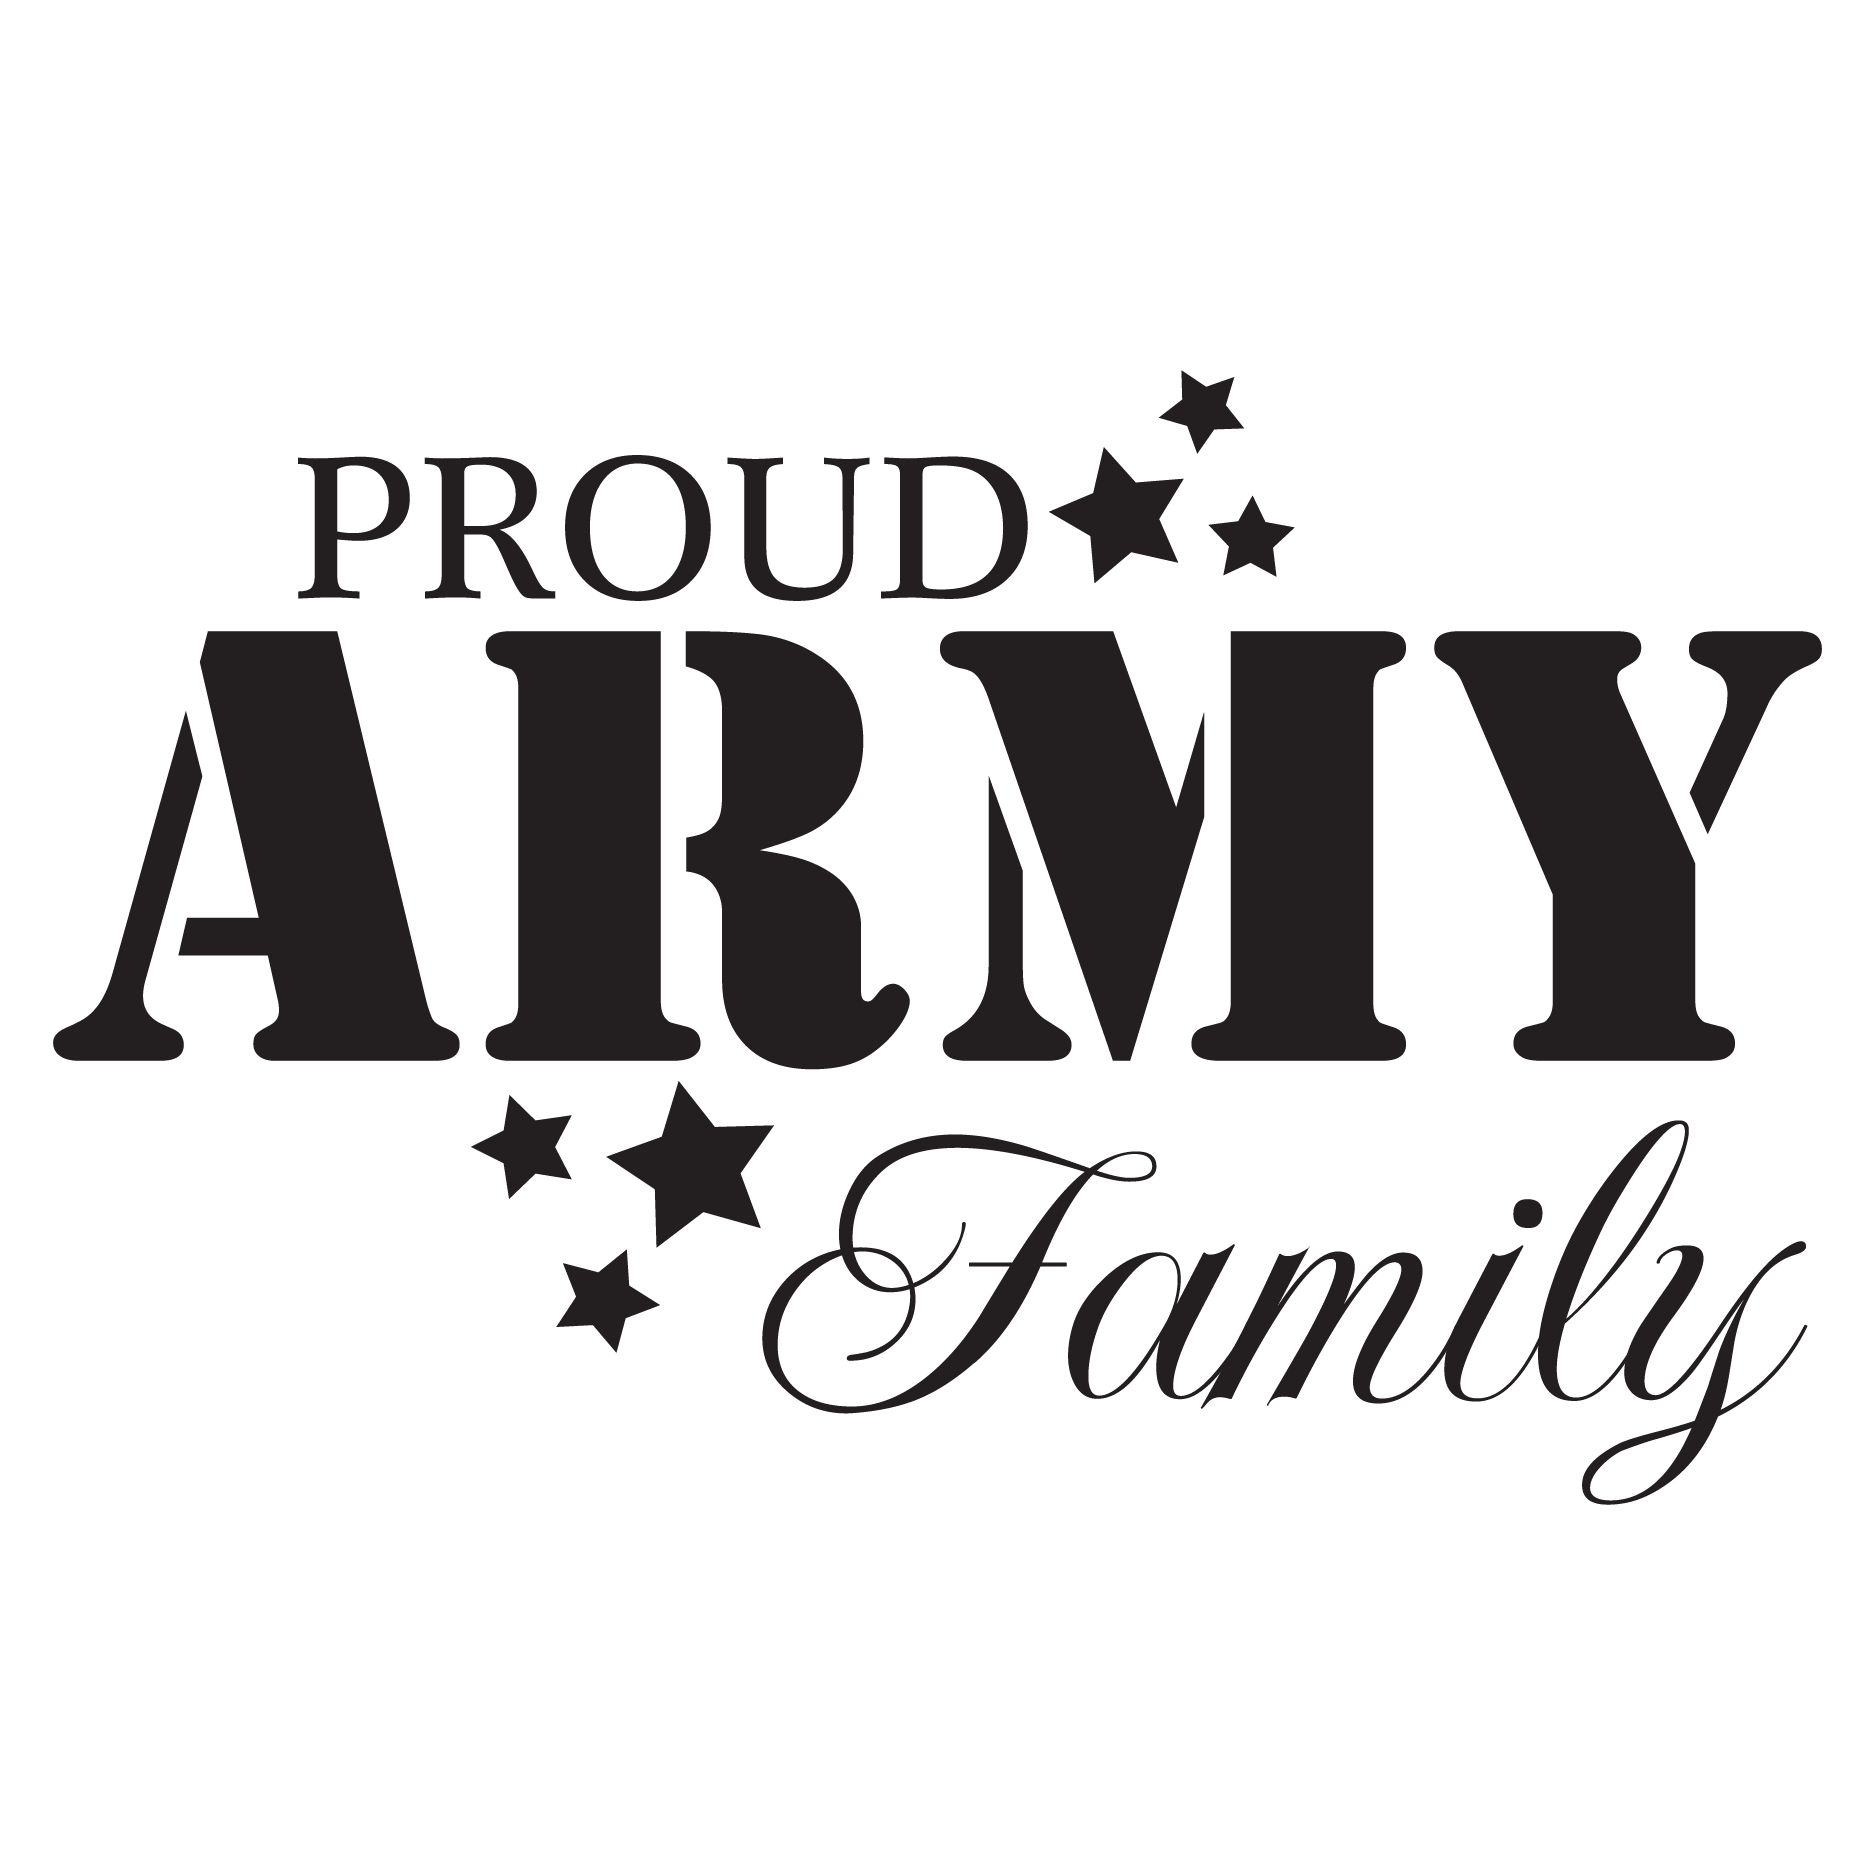 Proud Army Family Stencil